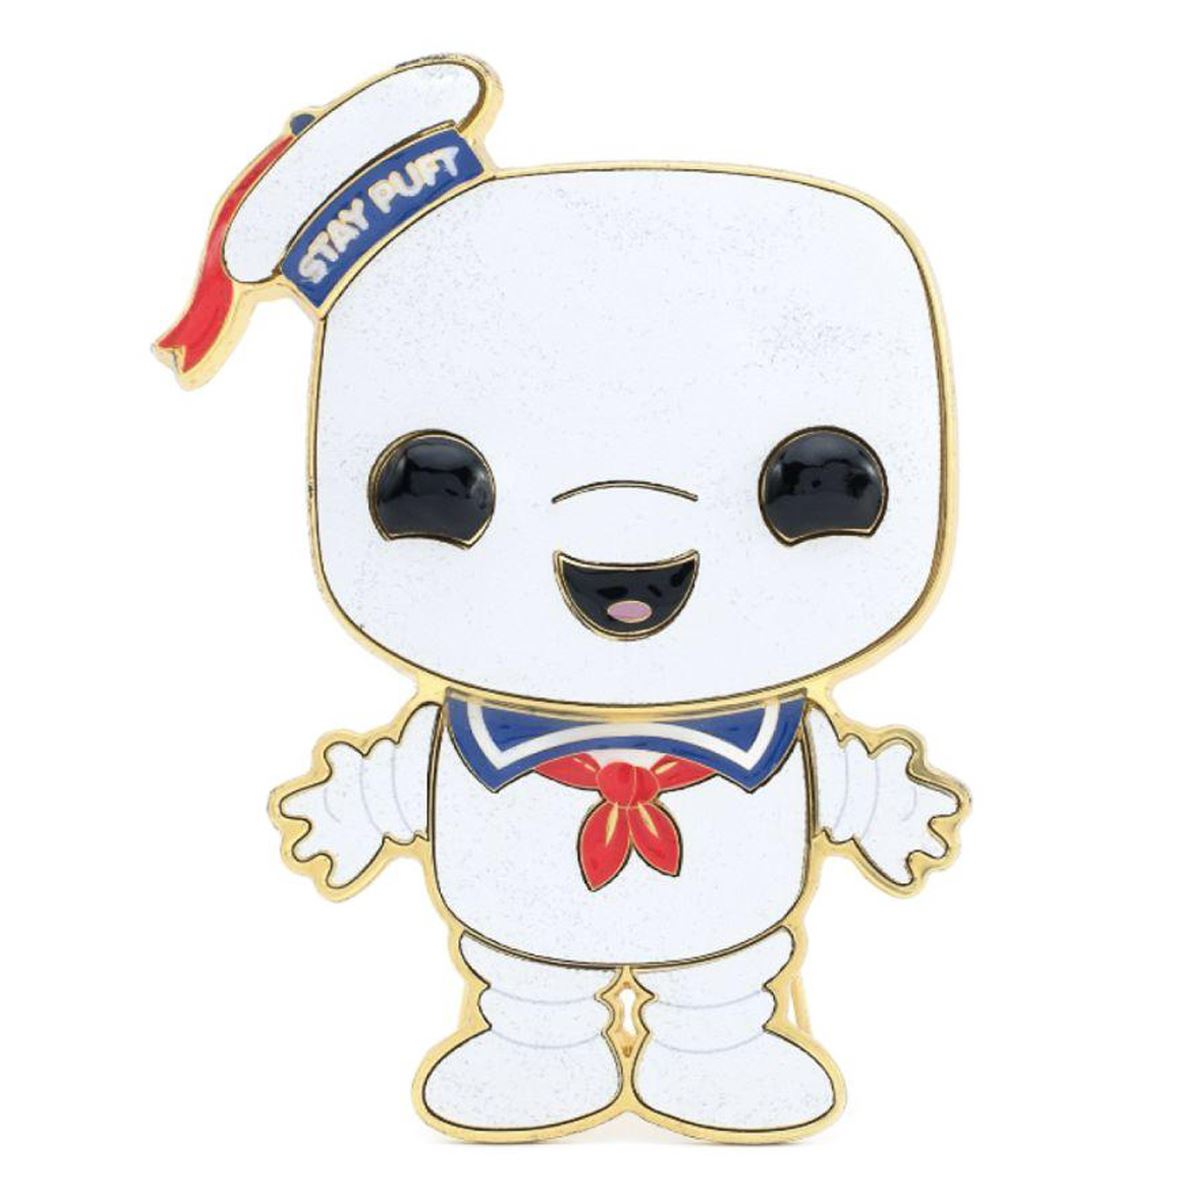 Stay Puft Marshmallow Man Ghostbusters Funko POP! Pin [PRE-ORDER] Pop! Pin Funko